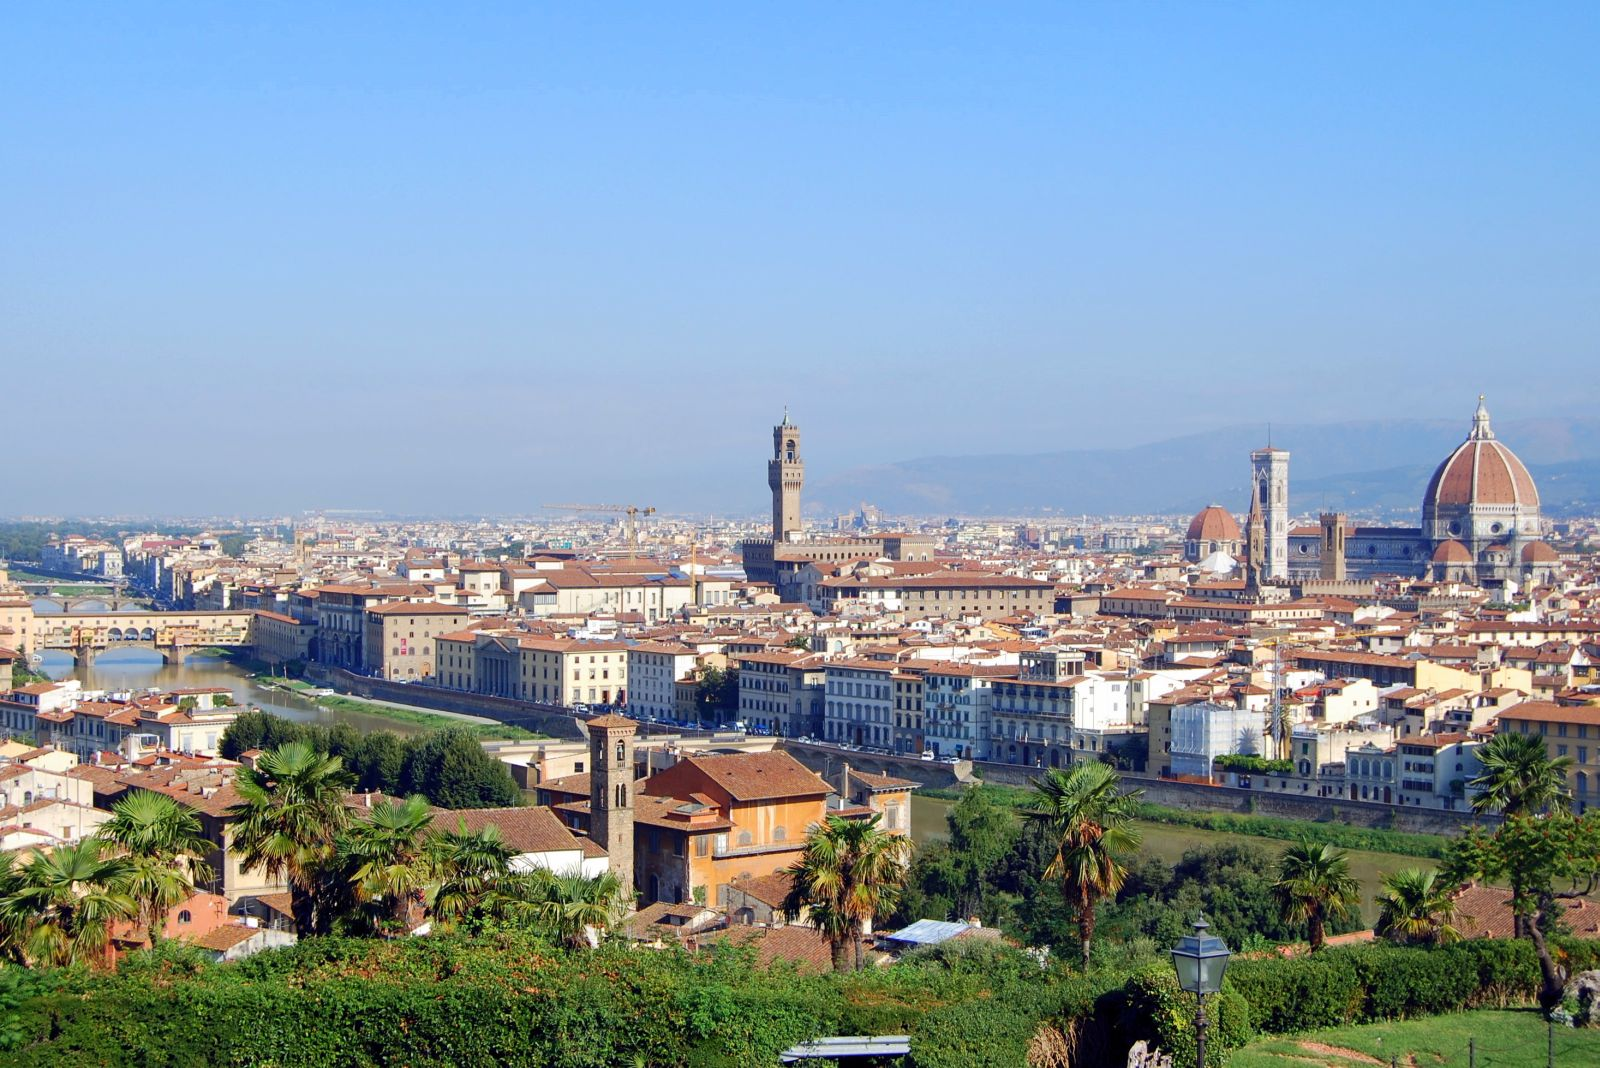 Panorama Firence sa Piazzale Michelangelo